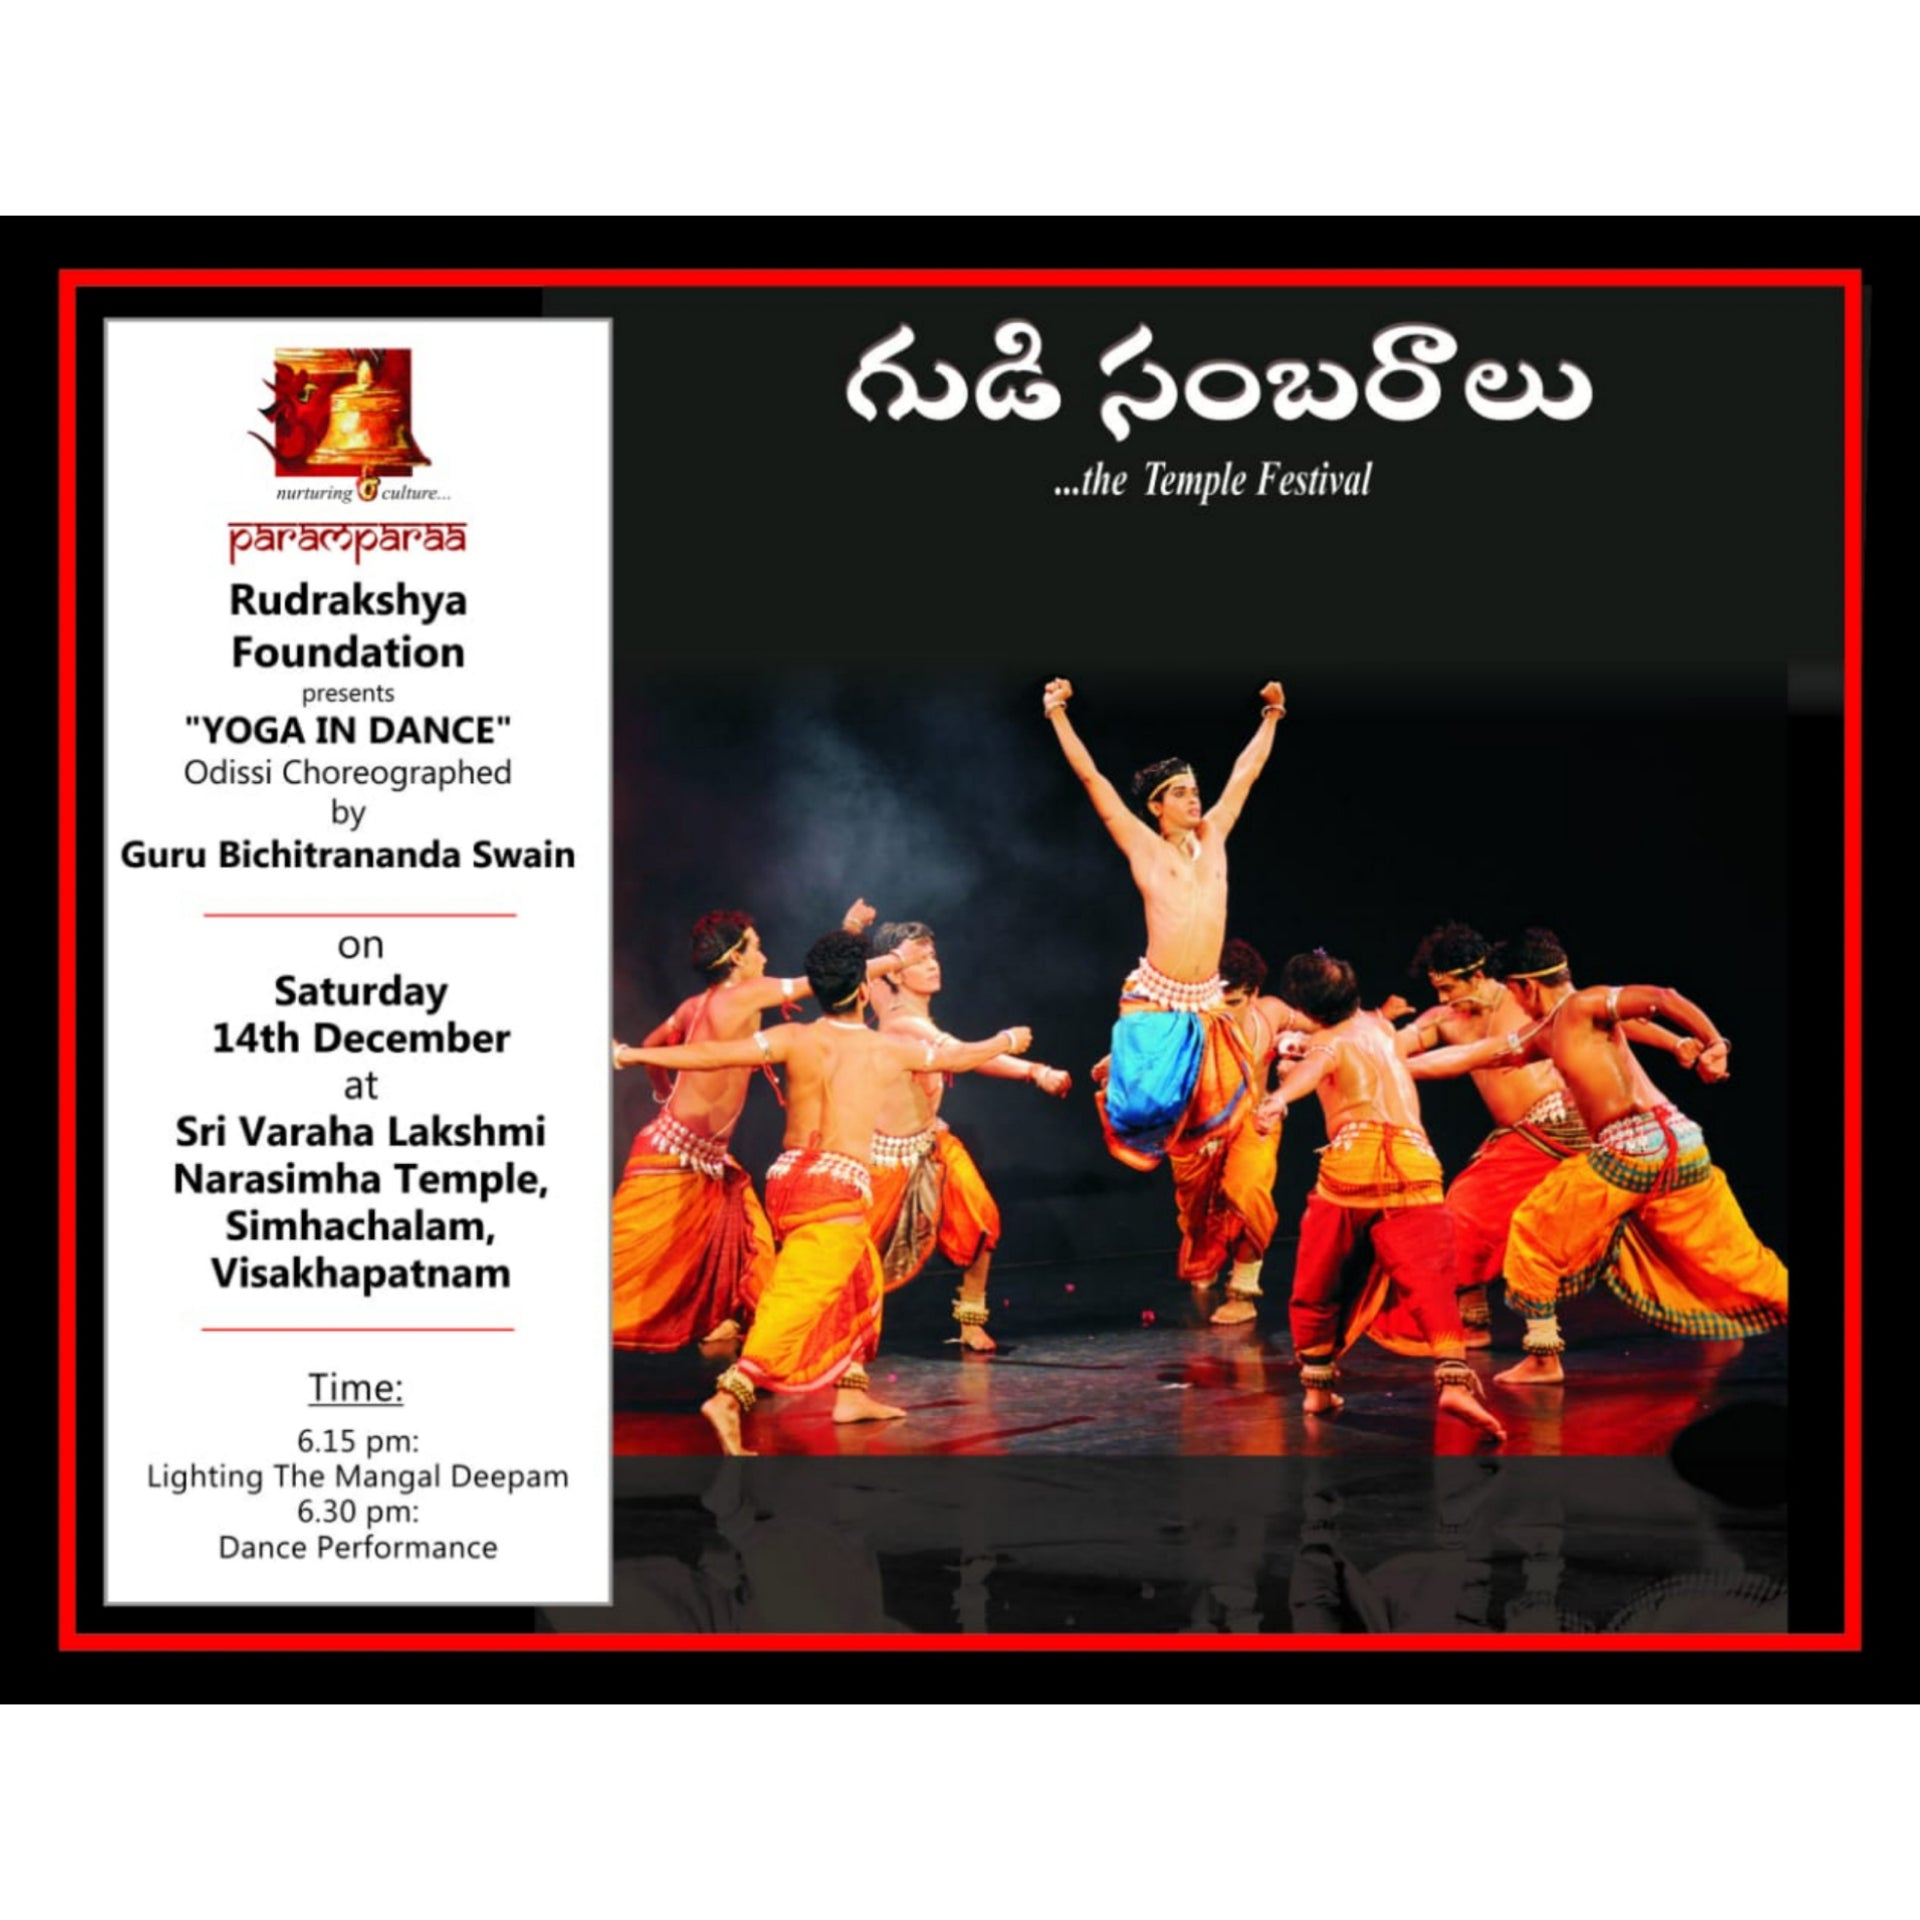 Yoga in Dance by Rudrakshya Foundation